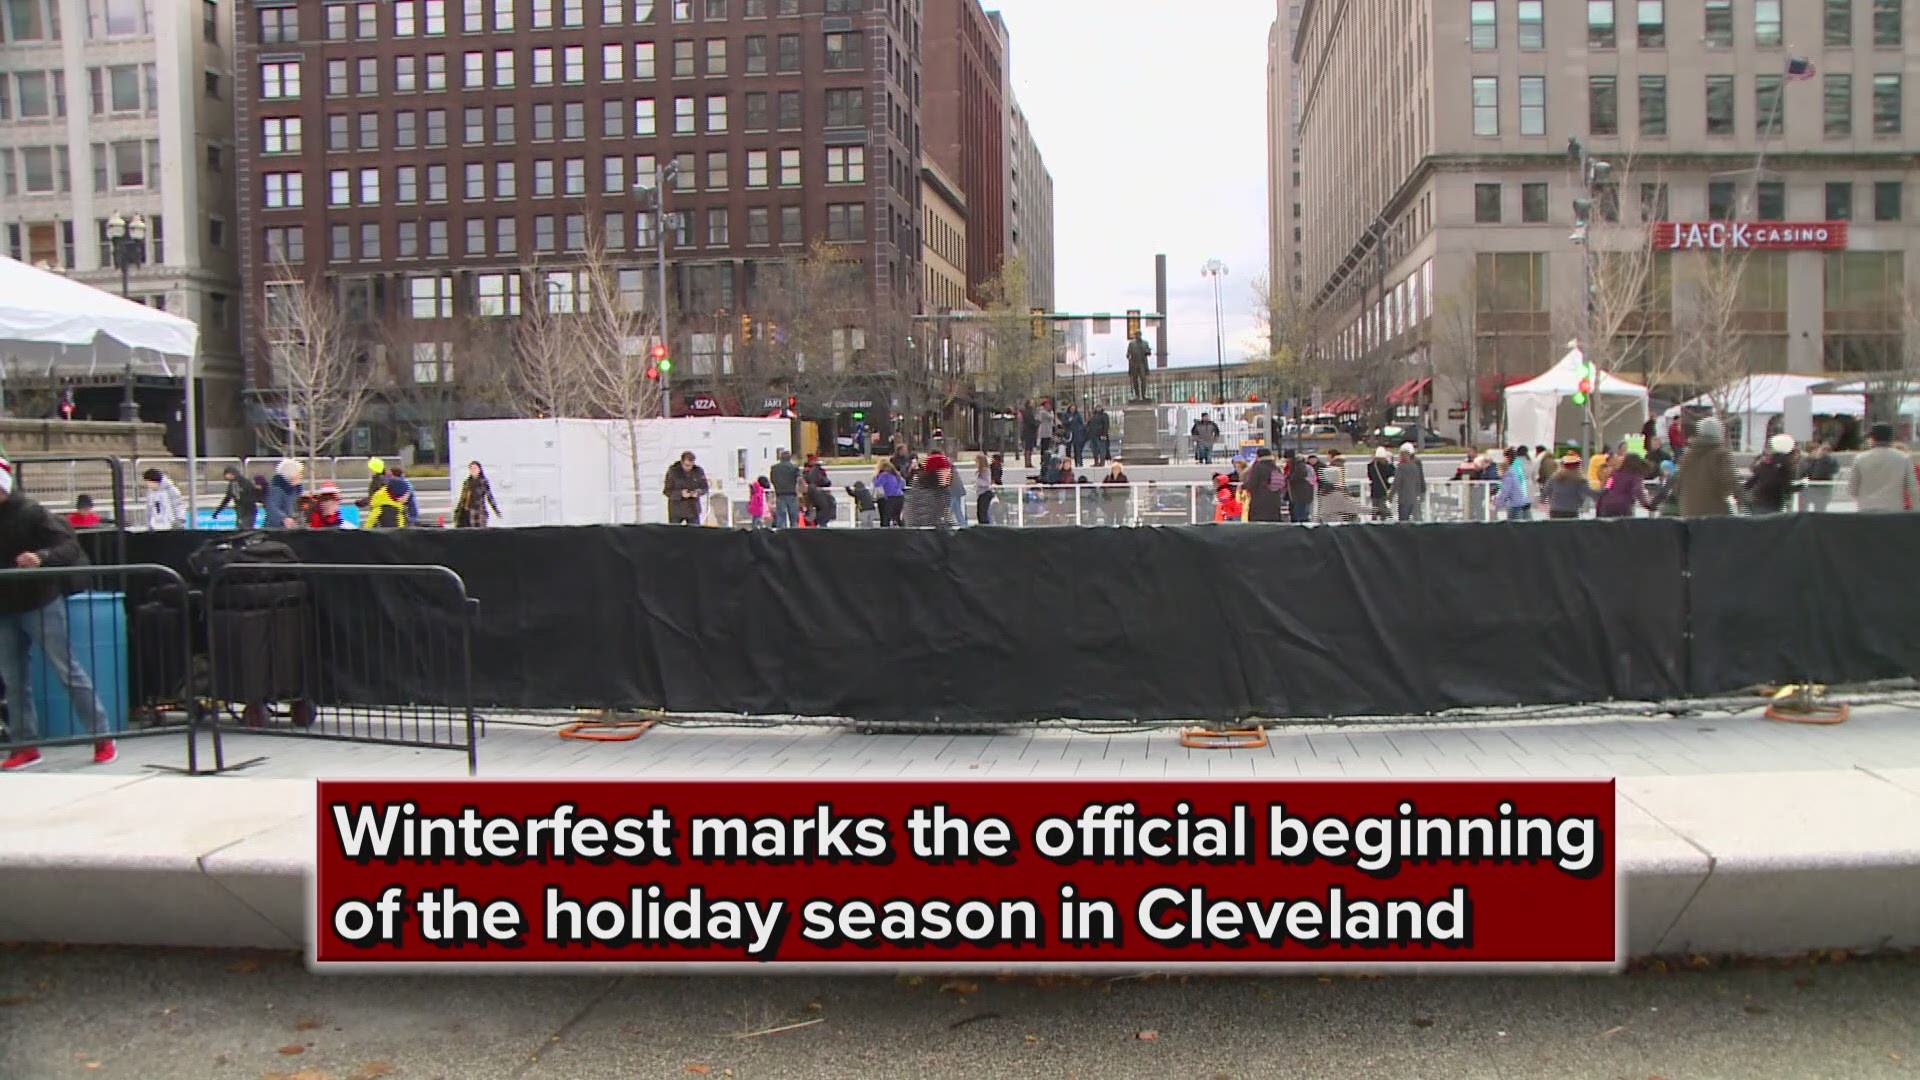 Downotwn Cleveland Christmas Shows 2020 Downtown Cleveland Alliance announces plans for 2020 Winterfest